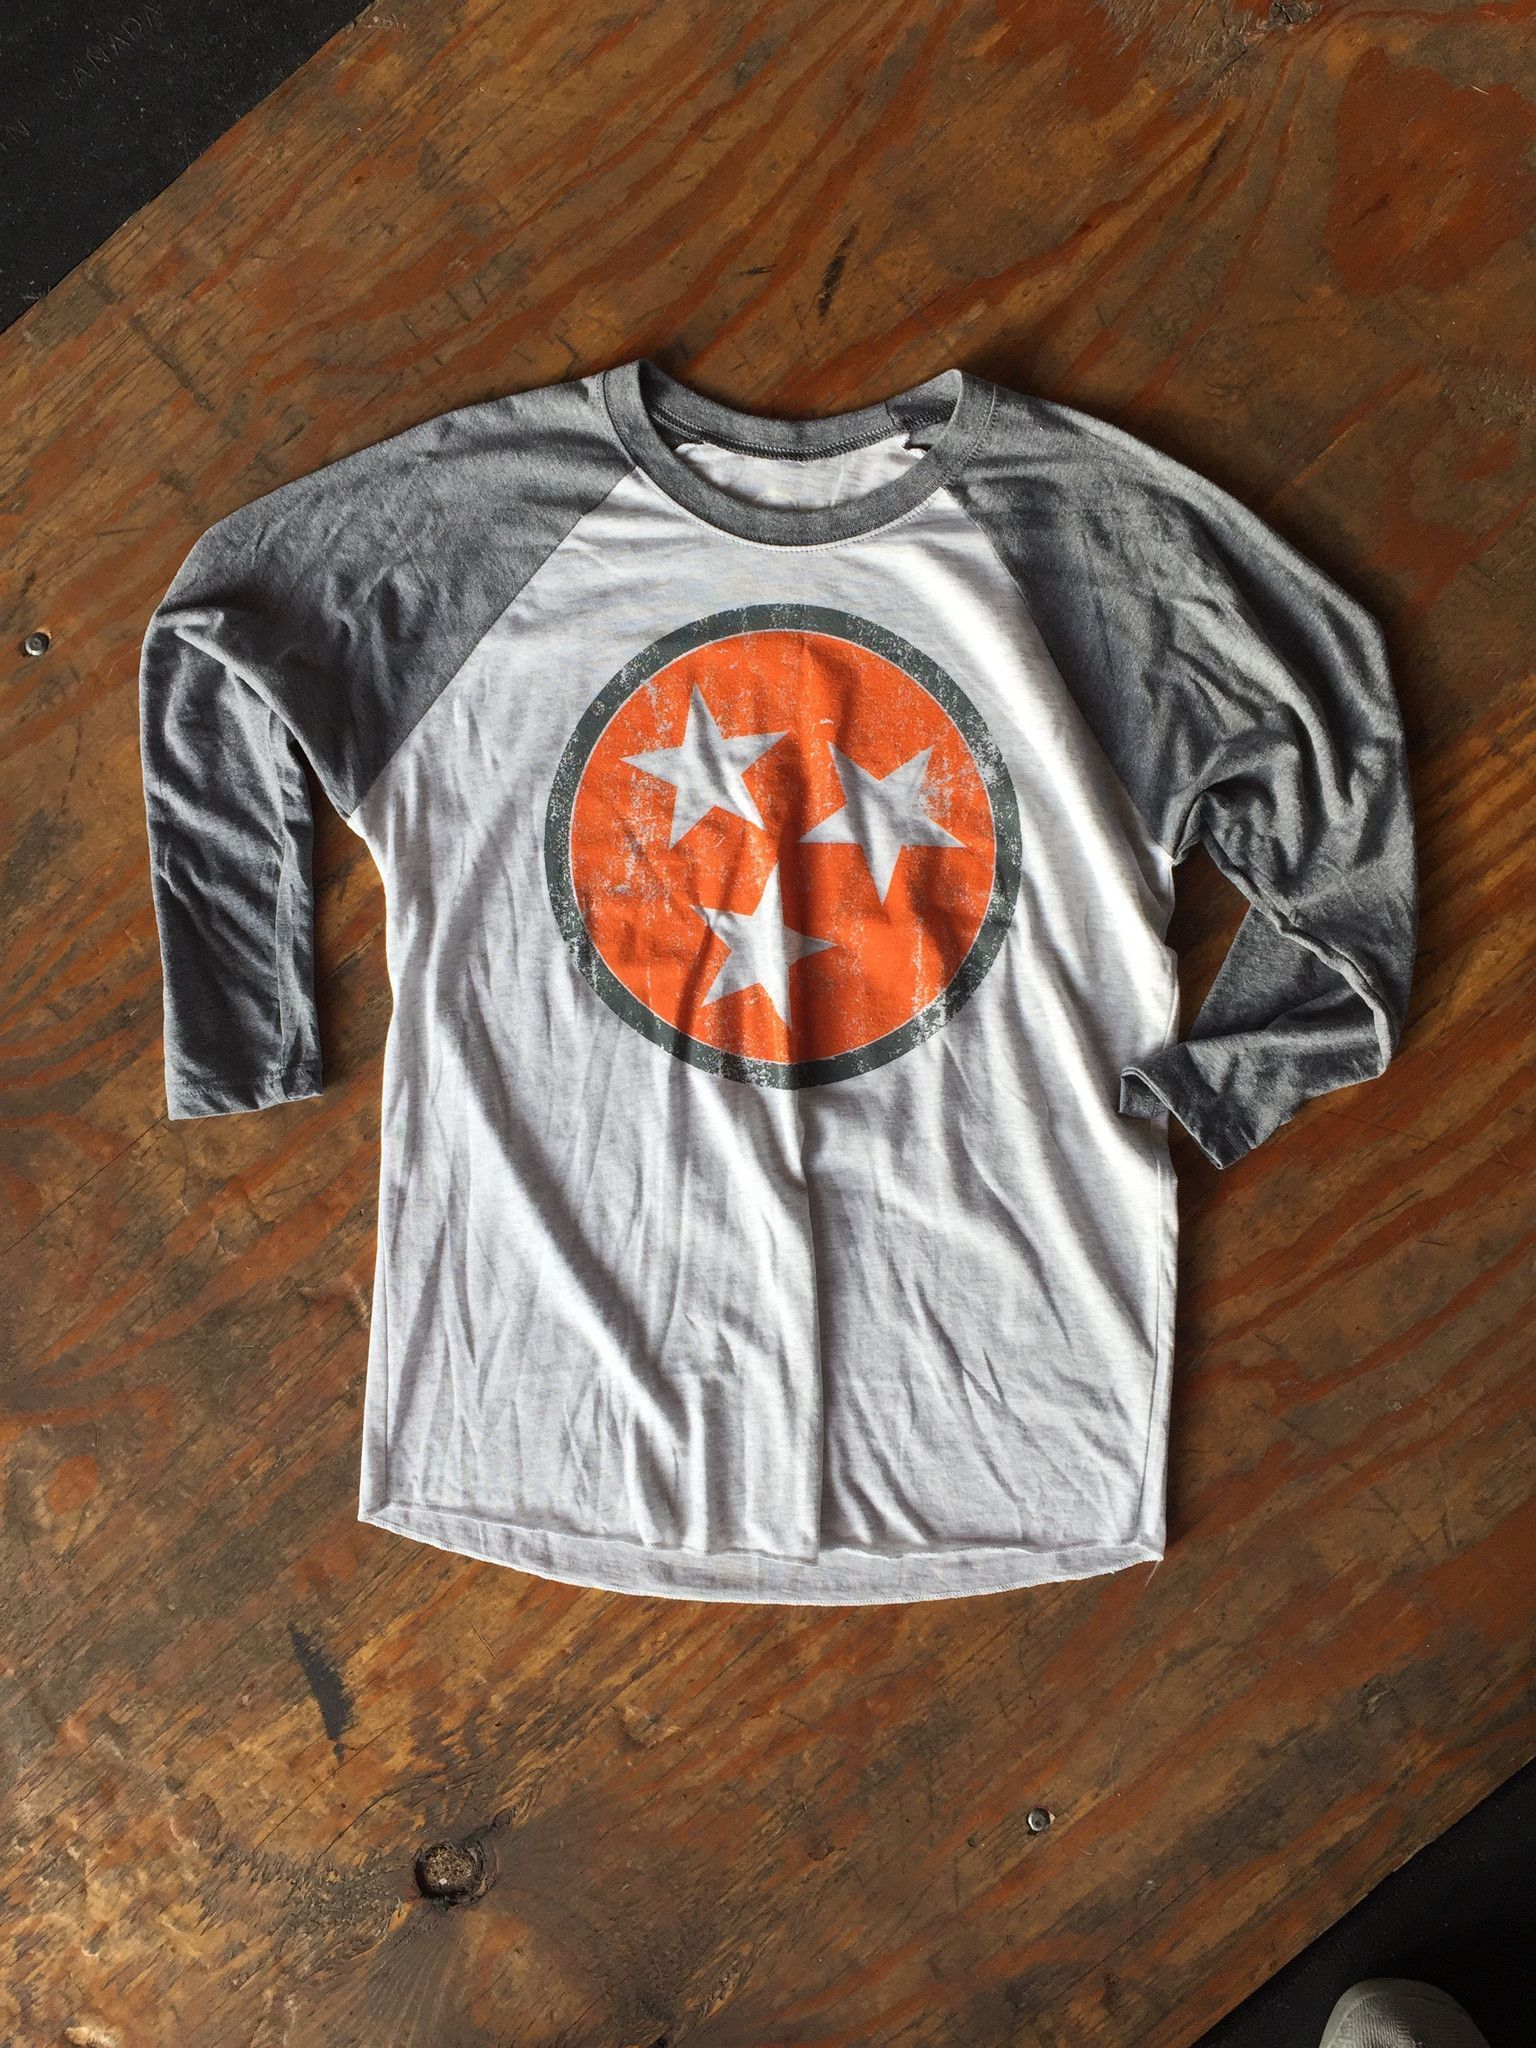 Pro tag 100 cotton 3 4 sleeve raglan baseball shirt in white black - Orange And Gray Tennessee Tri Star Baseball Tee